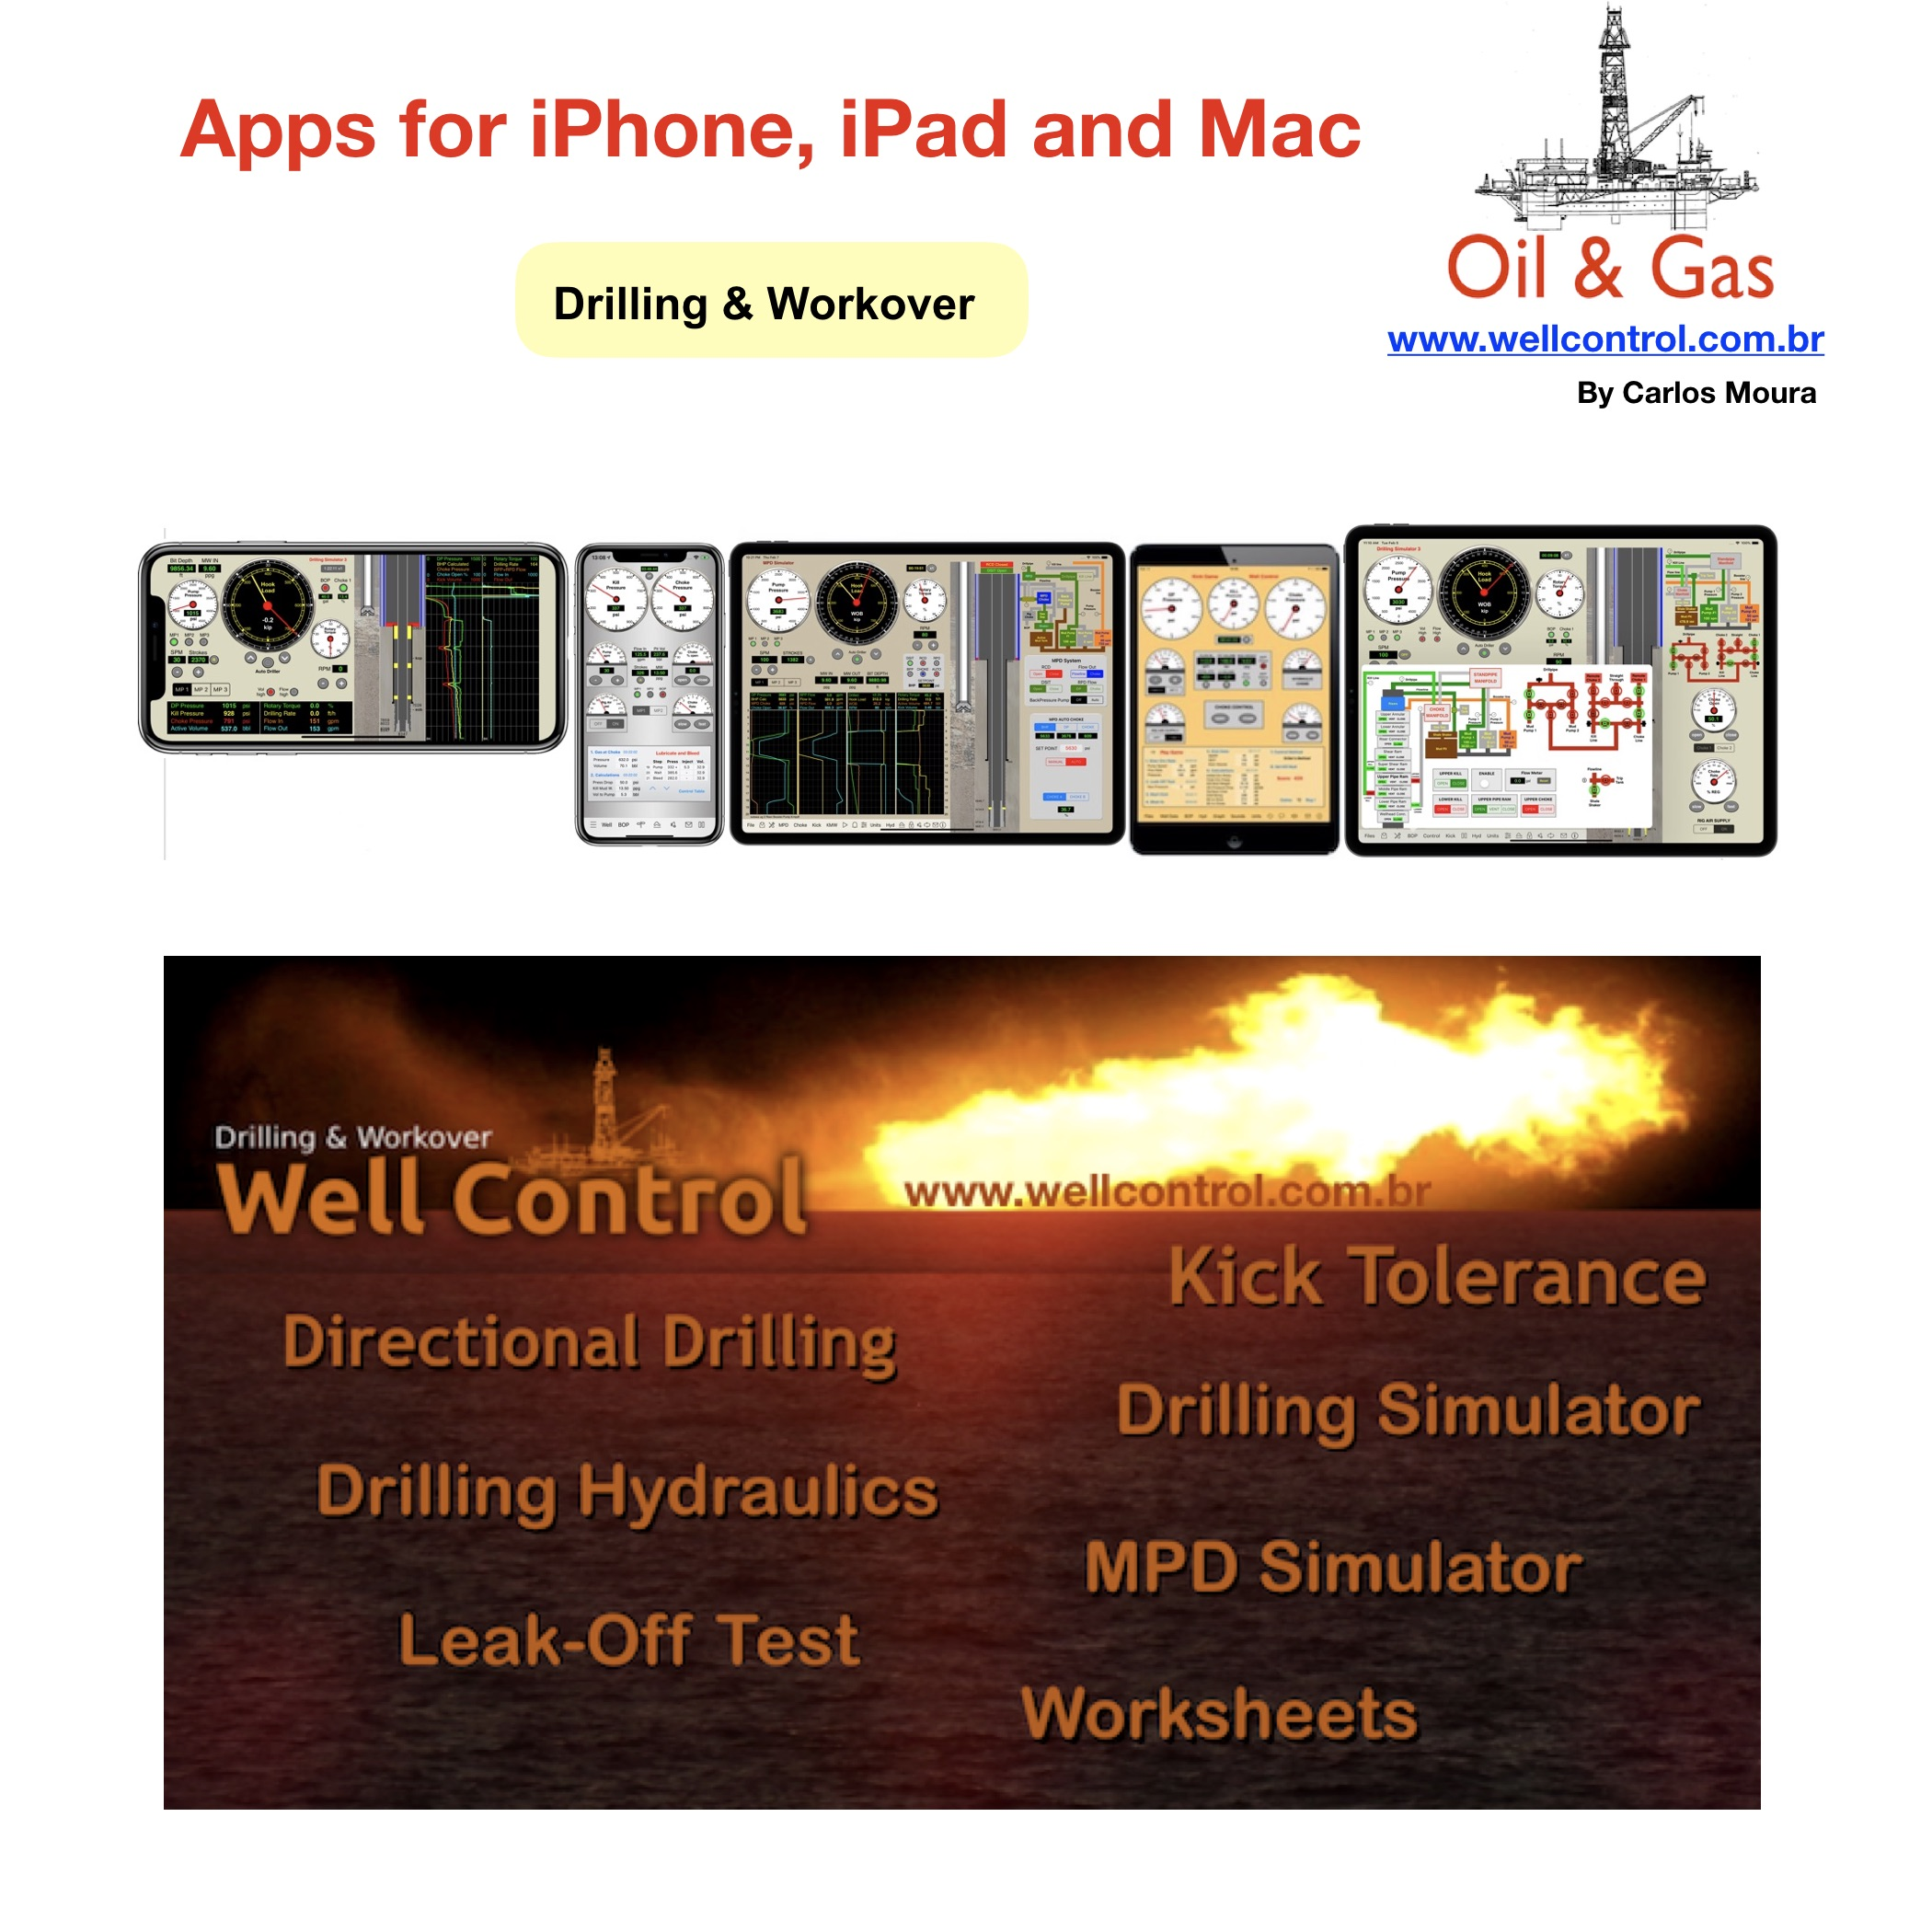 wellcontrol_apps_blogs_02